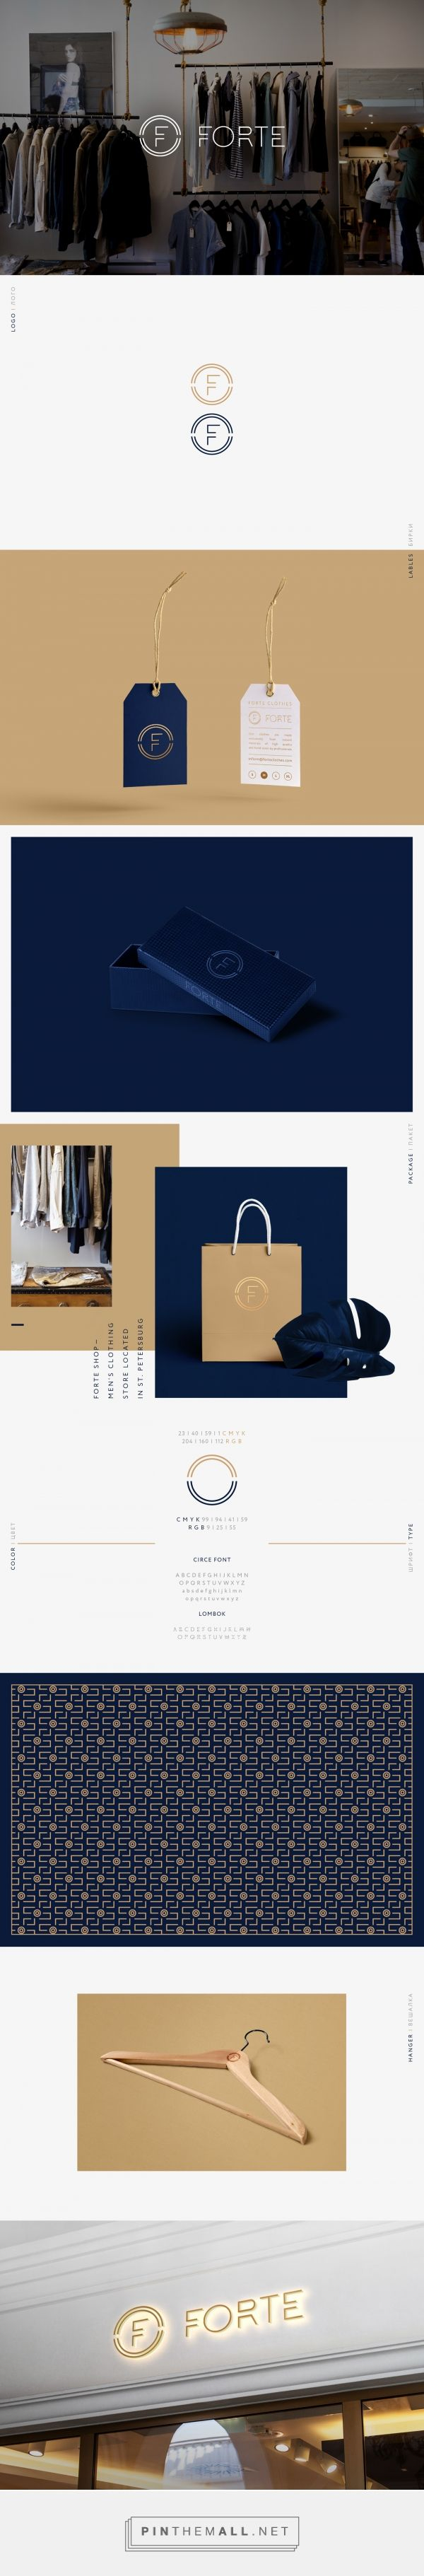 Forte Men's Clothing Branding by Dimitriy Dordyuk | Fivestar Branding Agency – Design and Branding Agency & Curated Inspiration Gallery